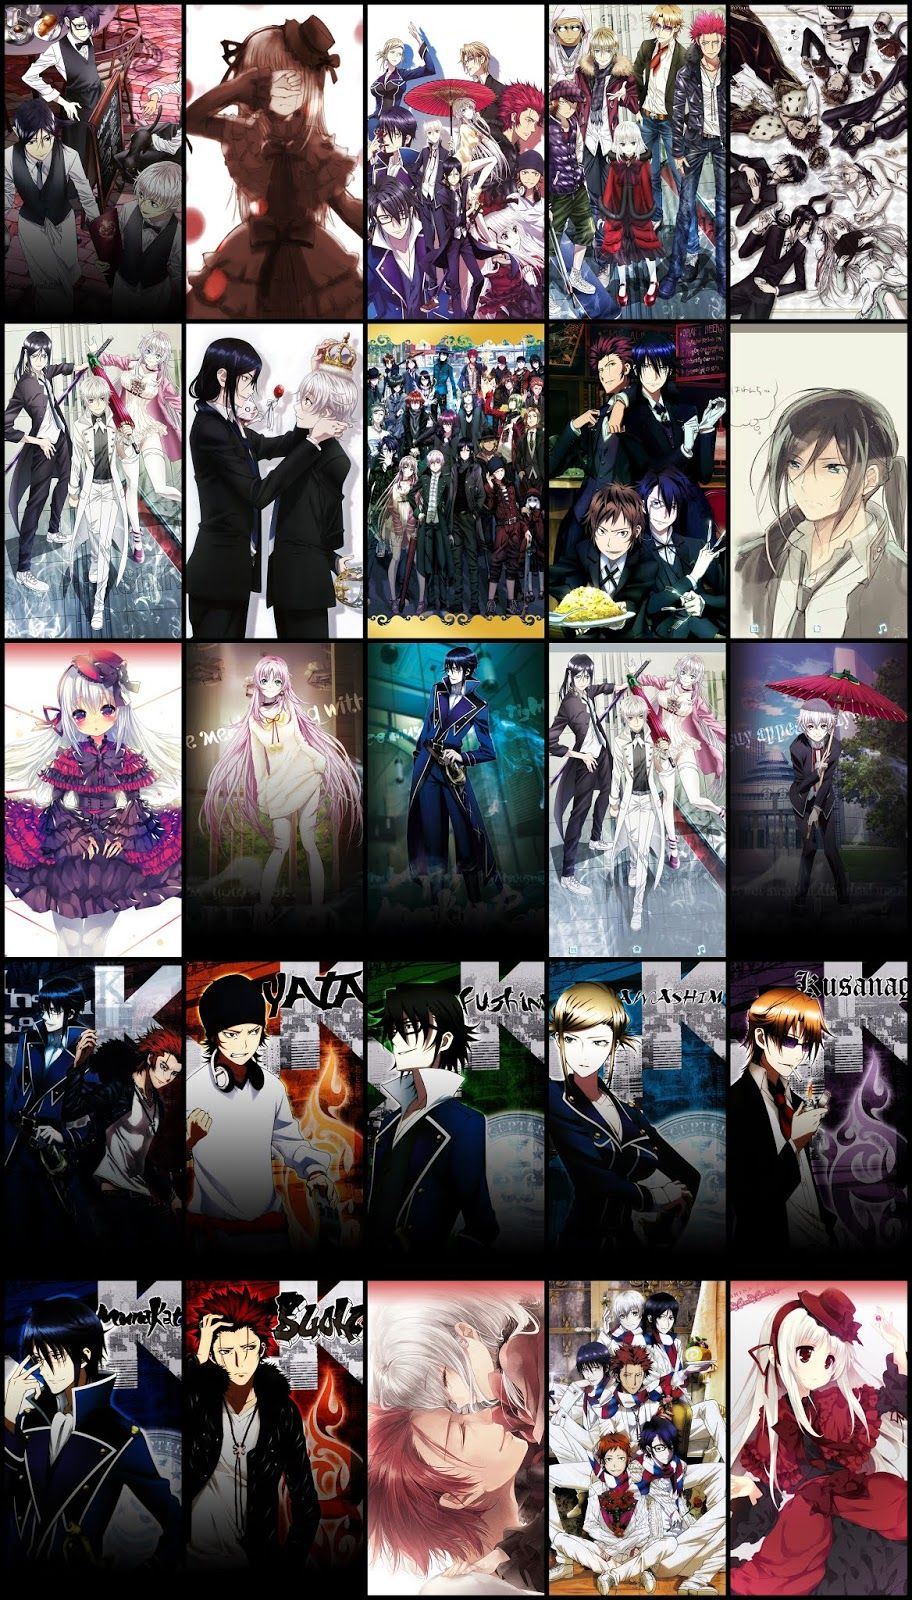 K Project Wallpaper Pack For Android Mobile Phone Part 01 Anime Wallpaper K Project K Project Anime